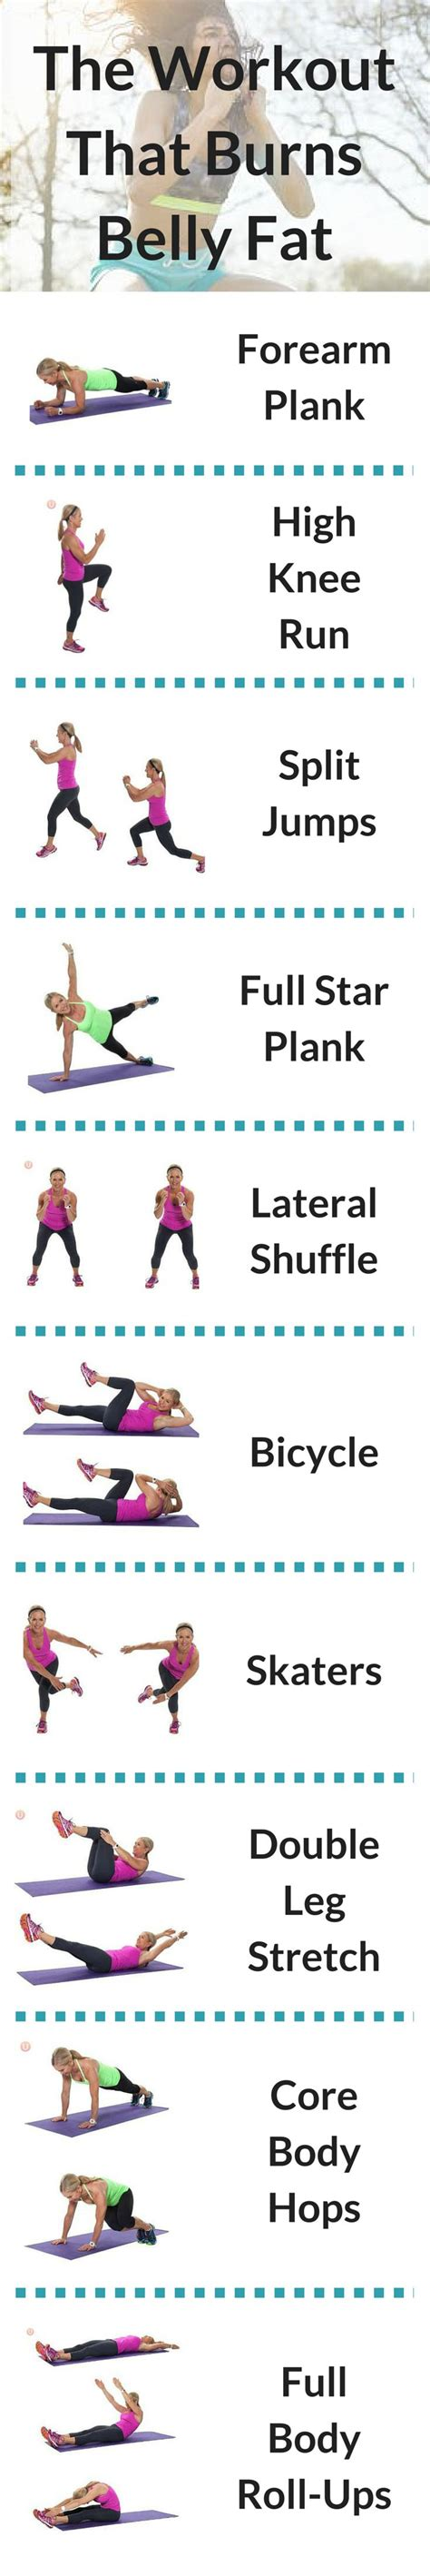 Best Workouts To Burn Belly Fat Fast | EOUA Blog